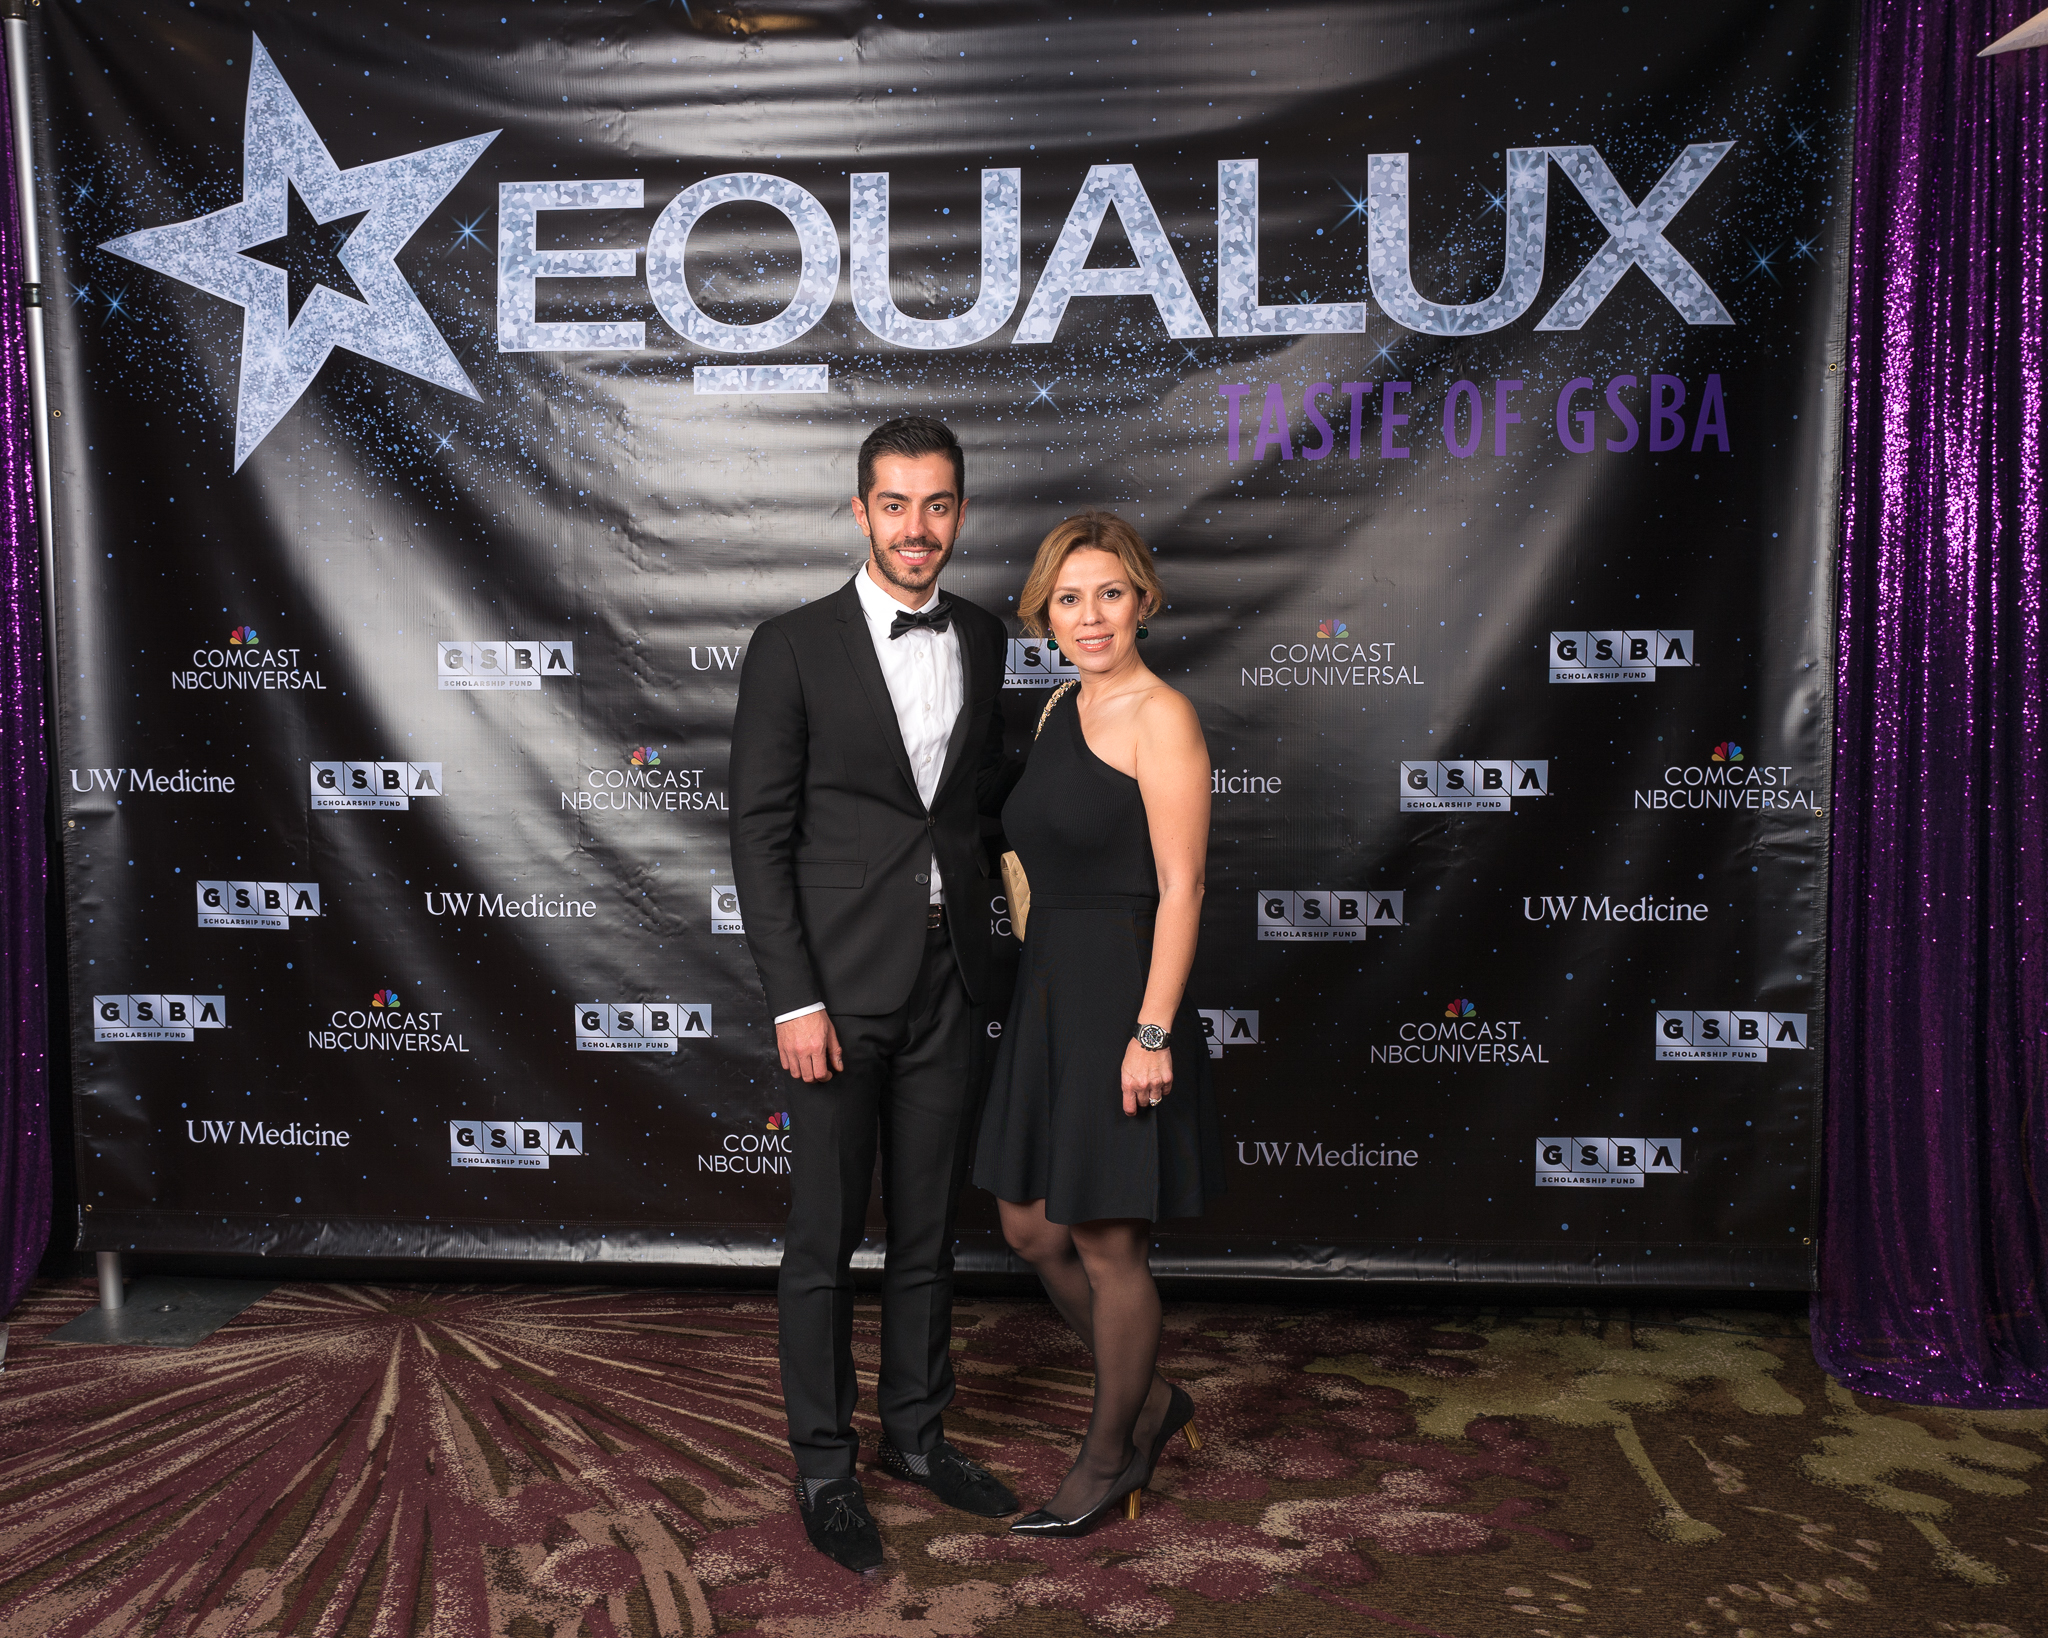 111718_GSBA EQUALUX at The Westin Seattle (Credit- Nate Gowdy)-161.jpg